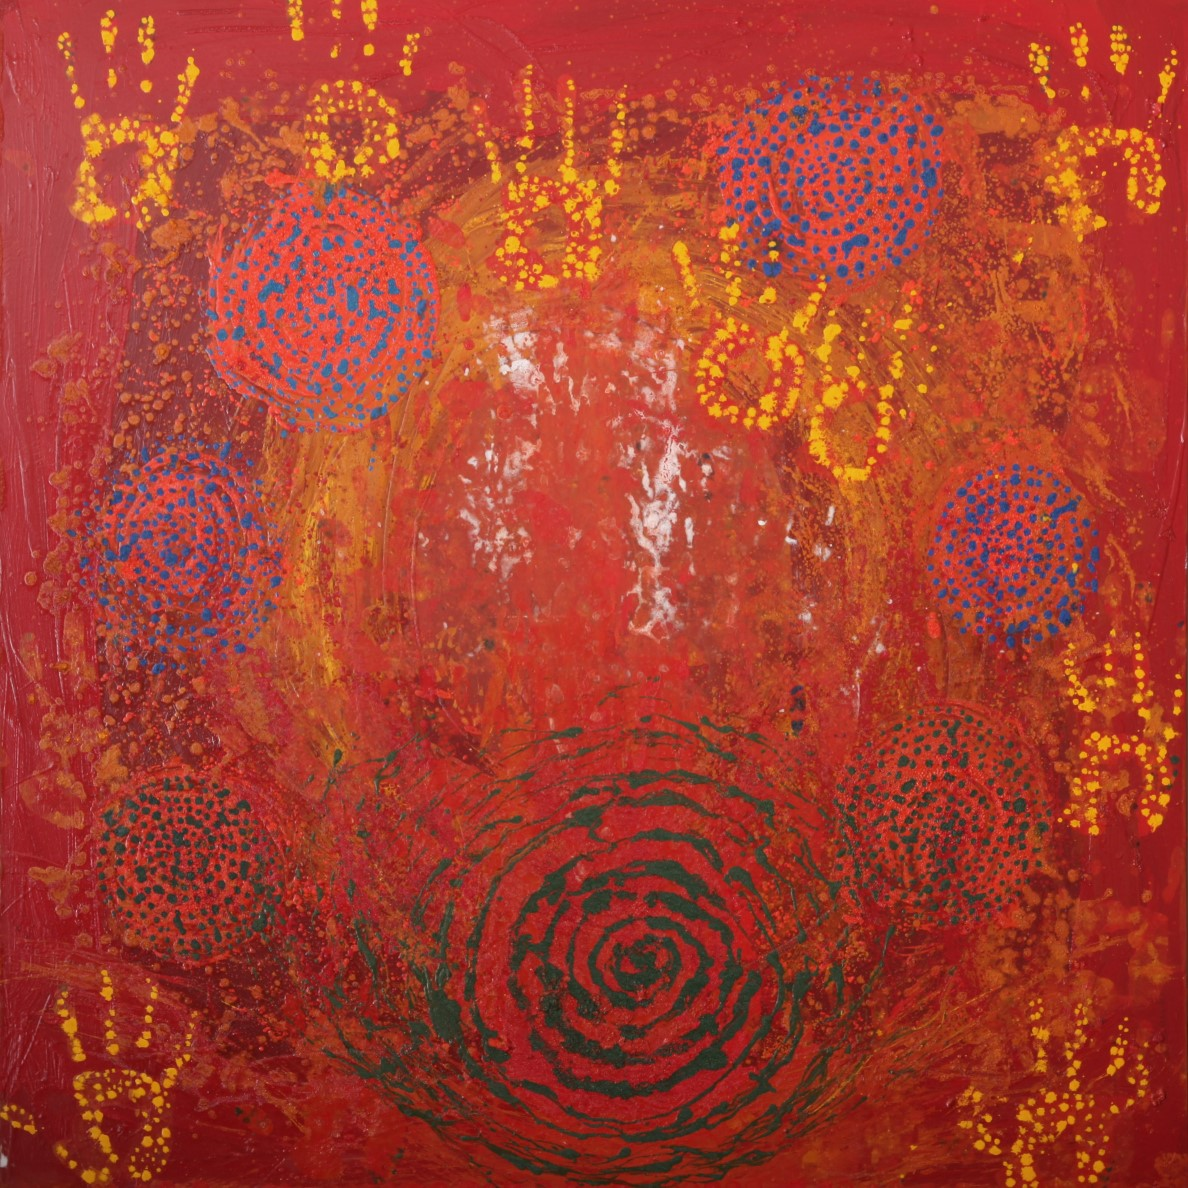 Dreamtime 1 - Oil, acrylic, moroccan plant powders48 x 48 inches£850Prints available